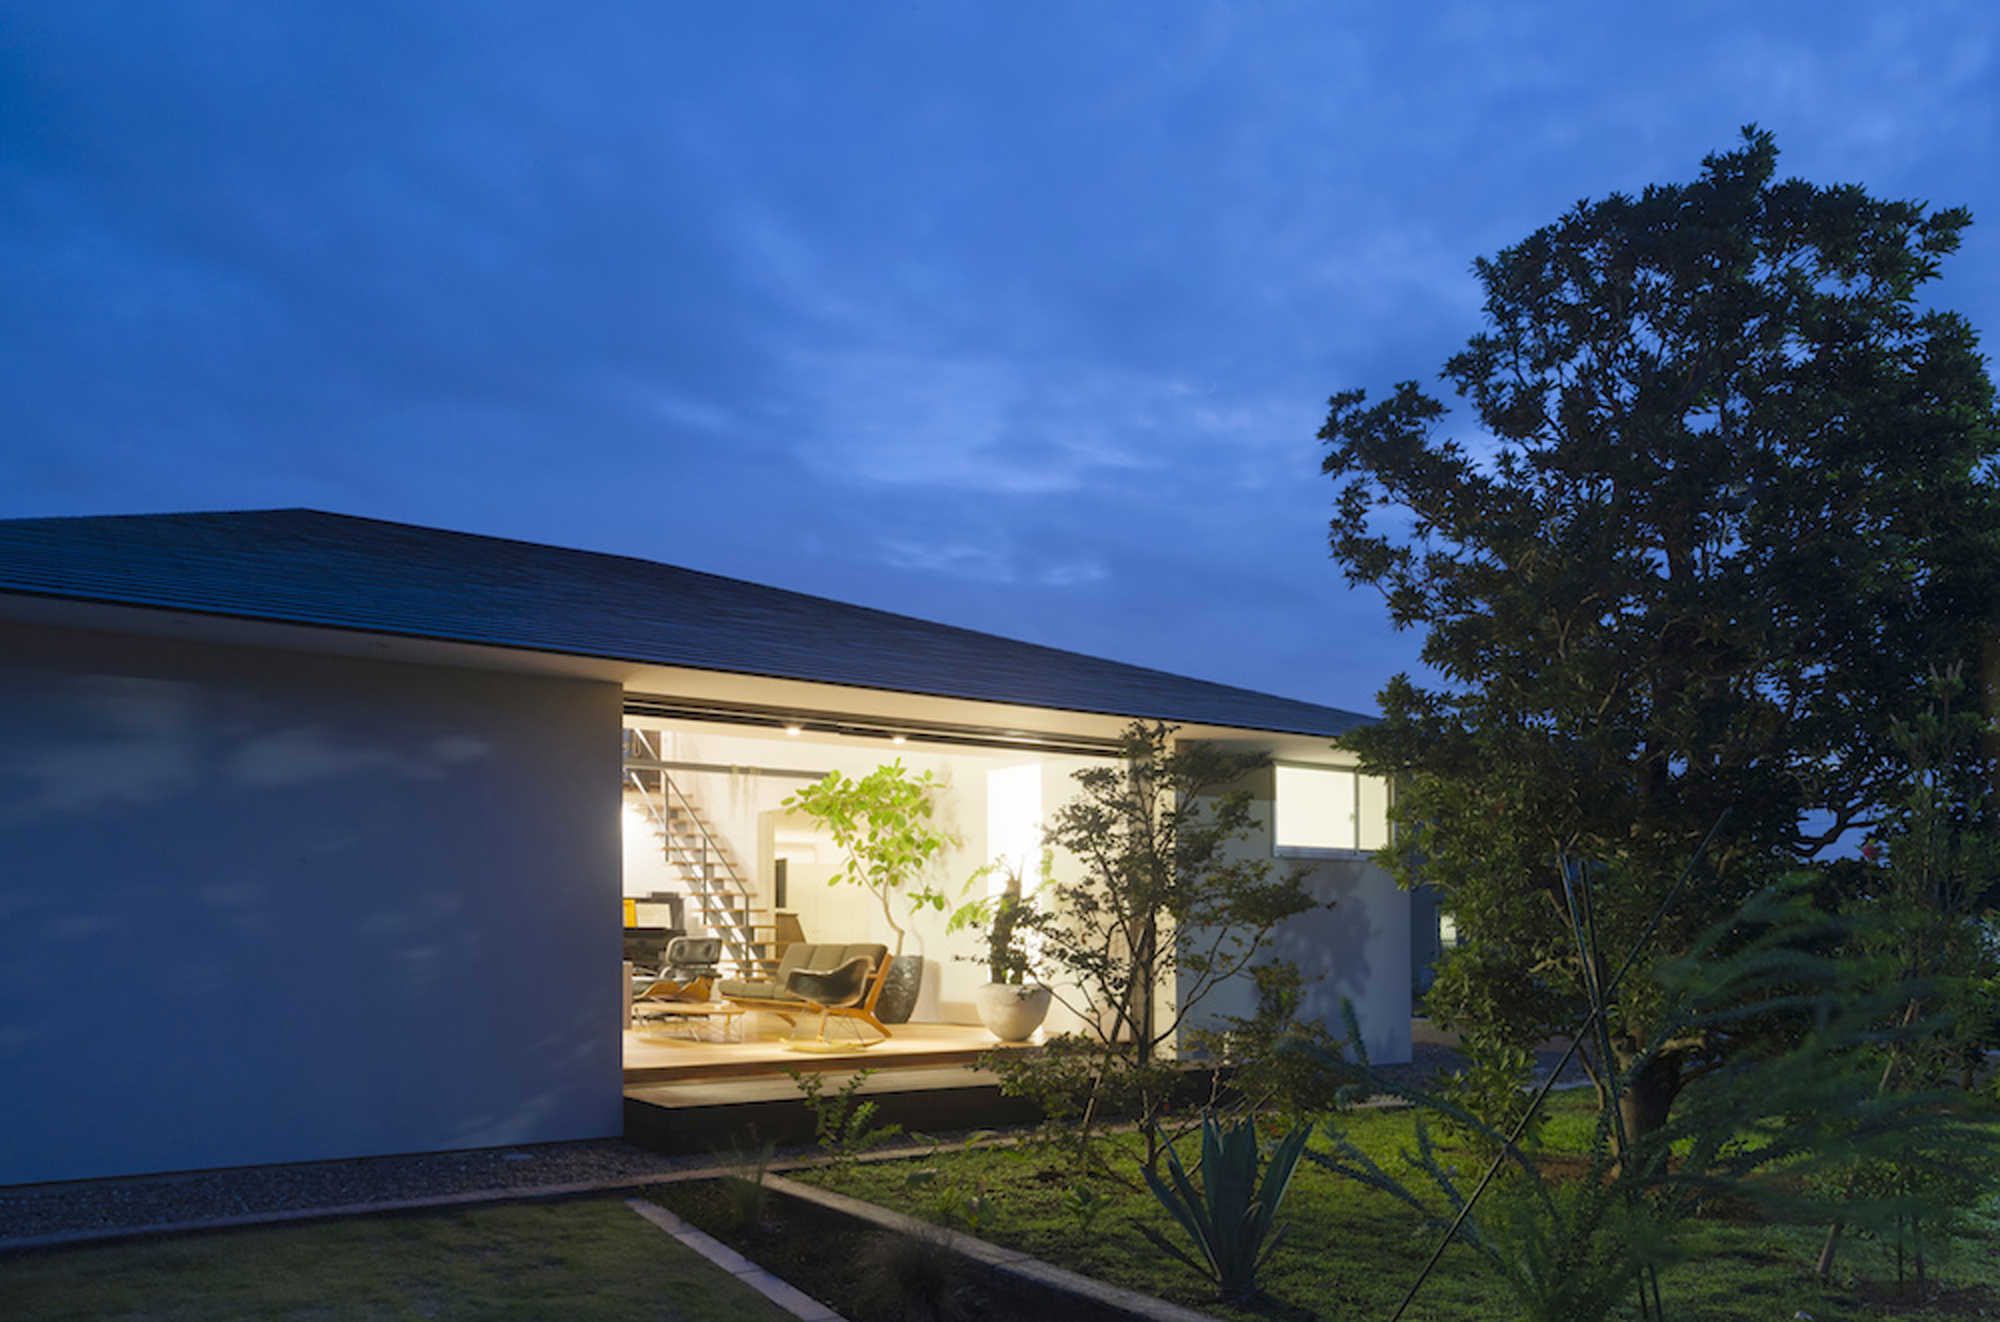 52eb1e00e8e44e2dbe00009b_house-with-a-large-hipped-roof-naoi-architecture-design-office_housewithlhr_07